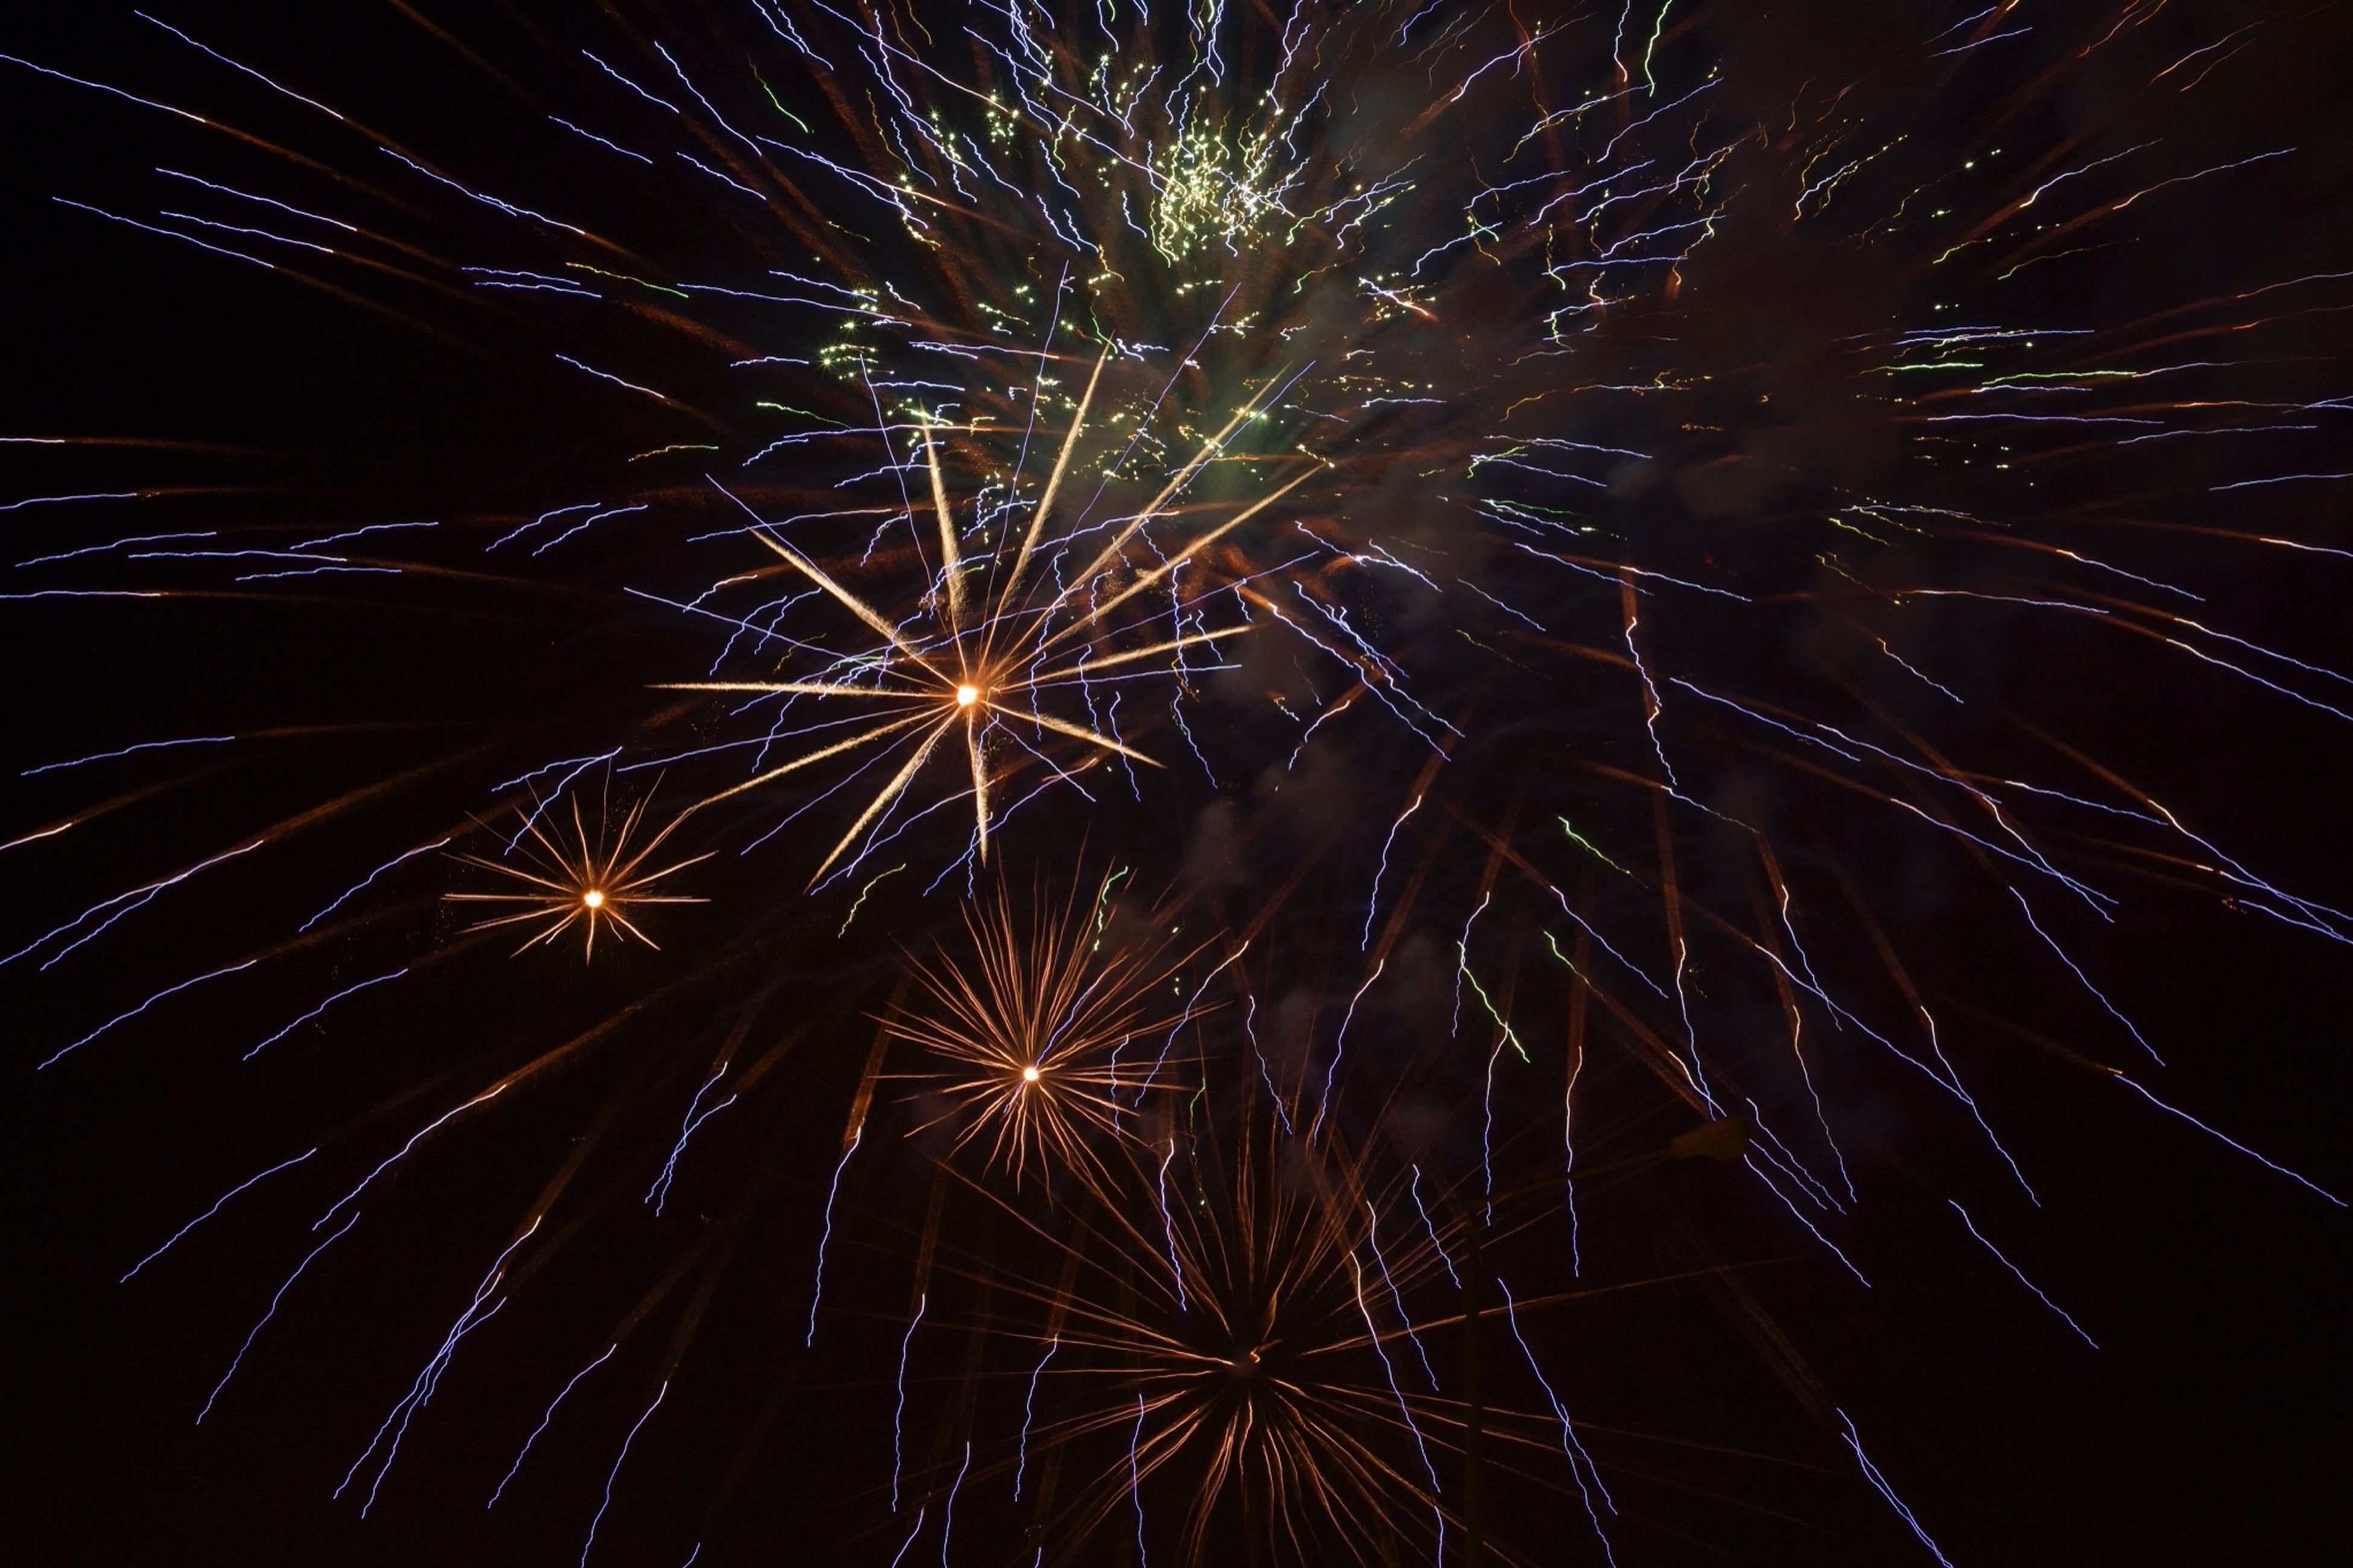 firework display, night, celebration, exploding, low angle view, long exposure, motion, firework - man made object, glowing, illuminated, sparks, arts culture and entertainment, firework, event, sky, entertainment, blurred motion, celebration event, outdoors, no people